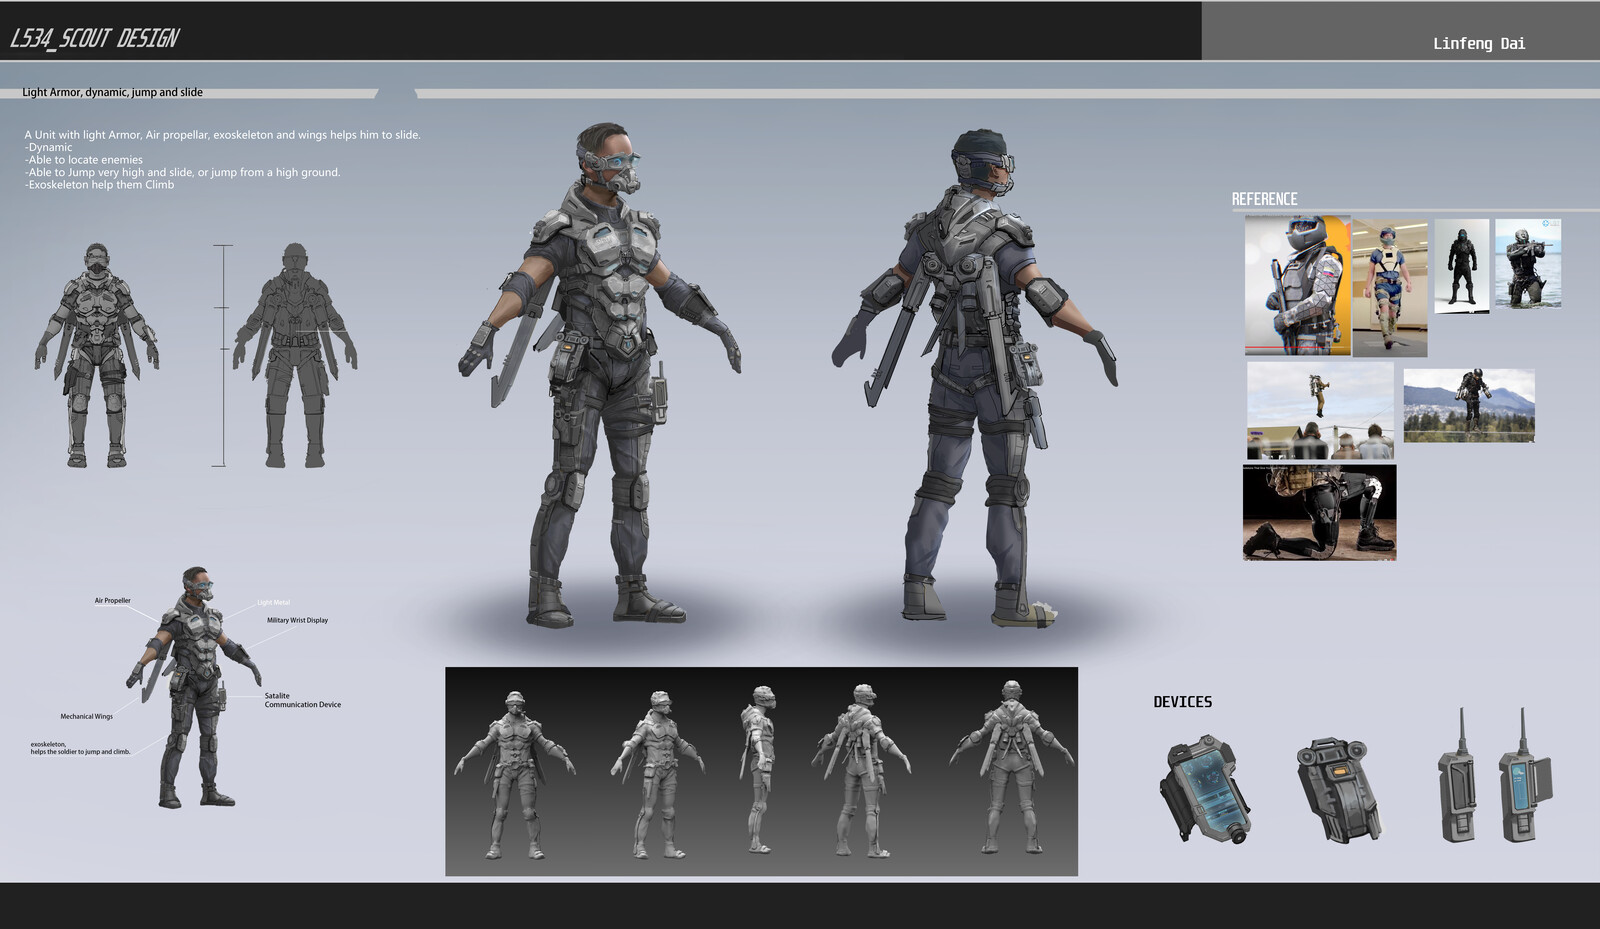 L534 Character_Scout Design